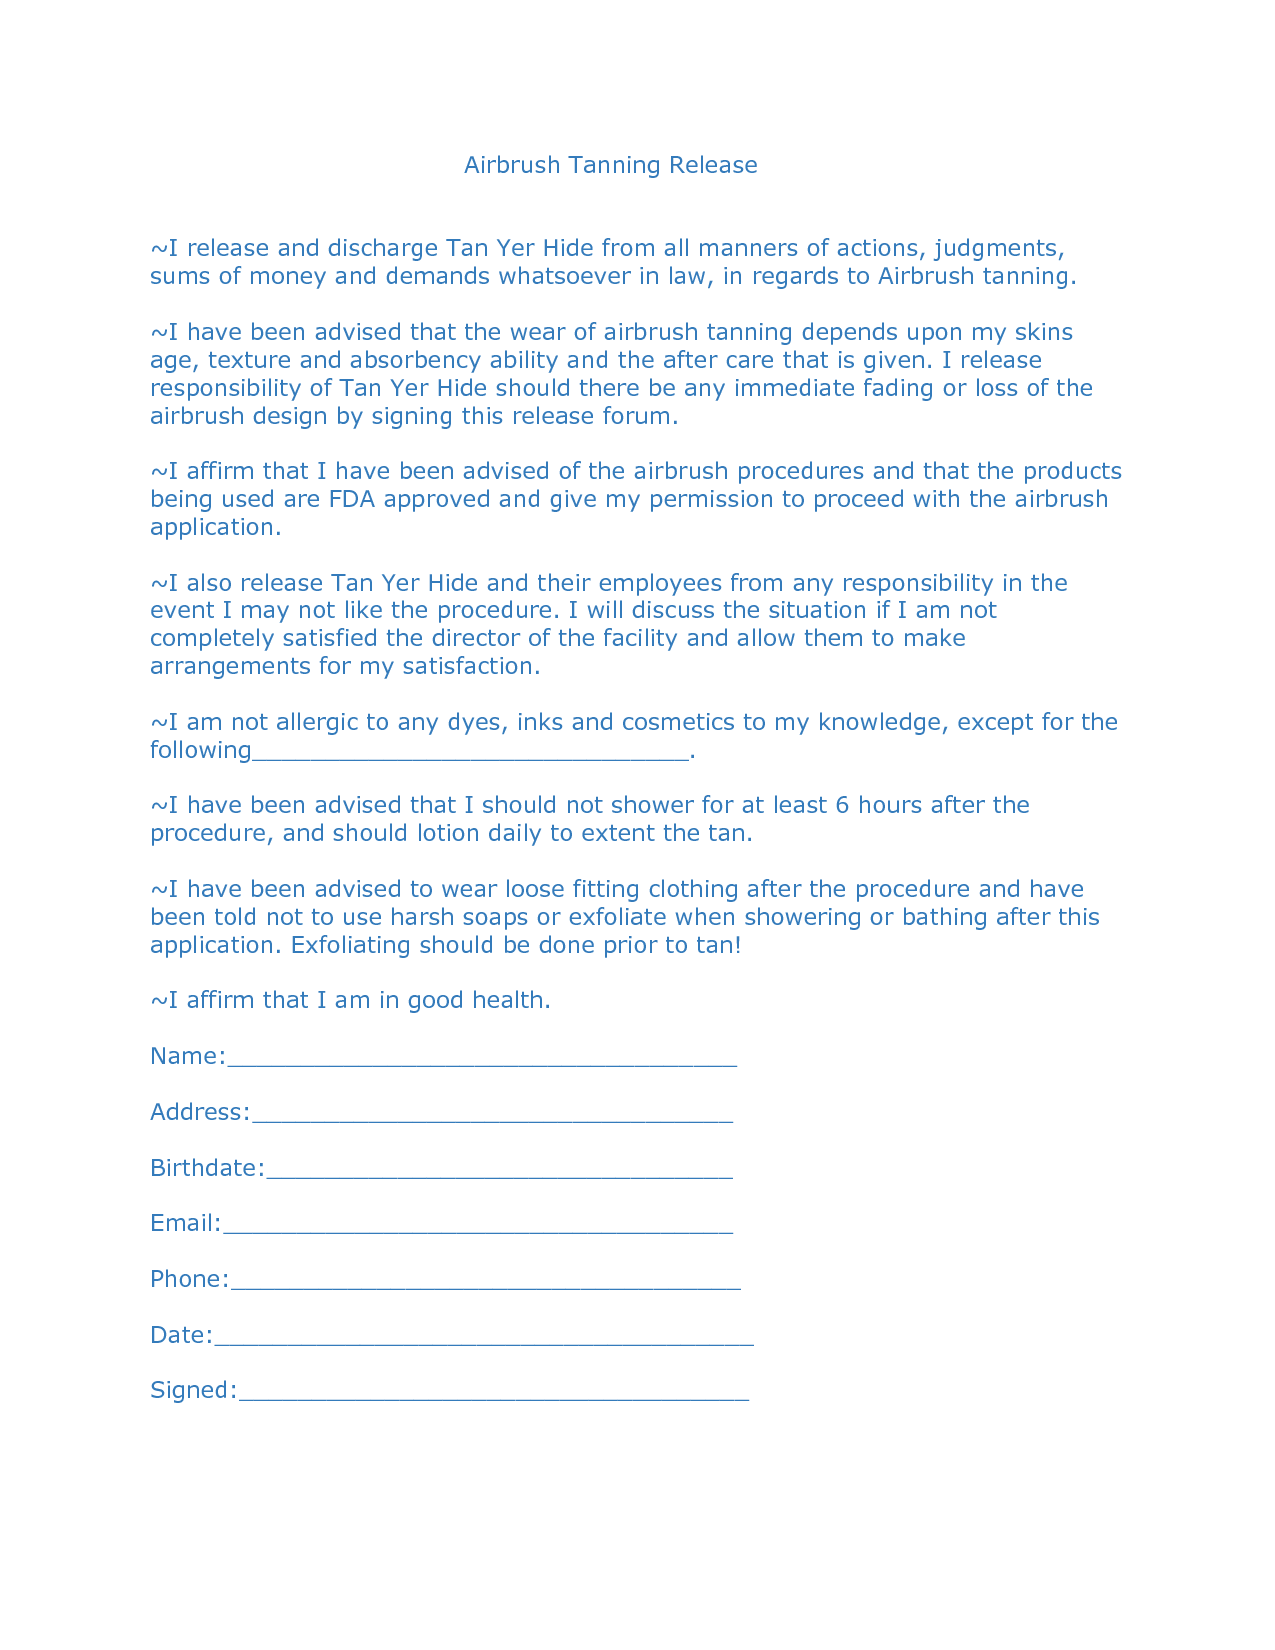 Spray Tan Release Forms